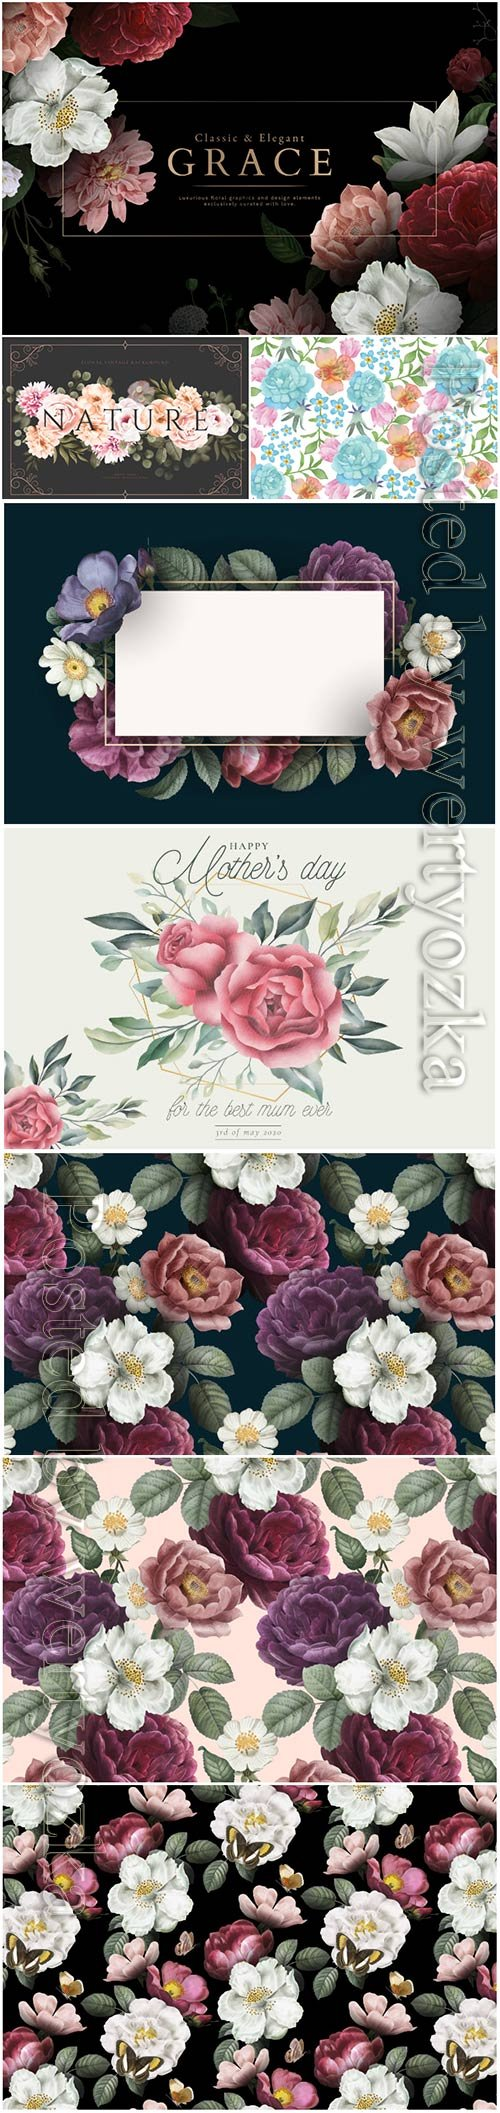 Beautiful vector backgrounds with roses and flowers